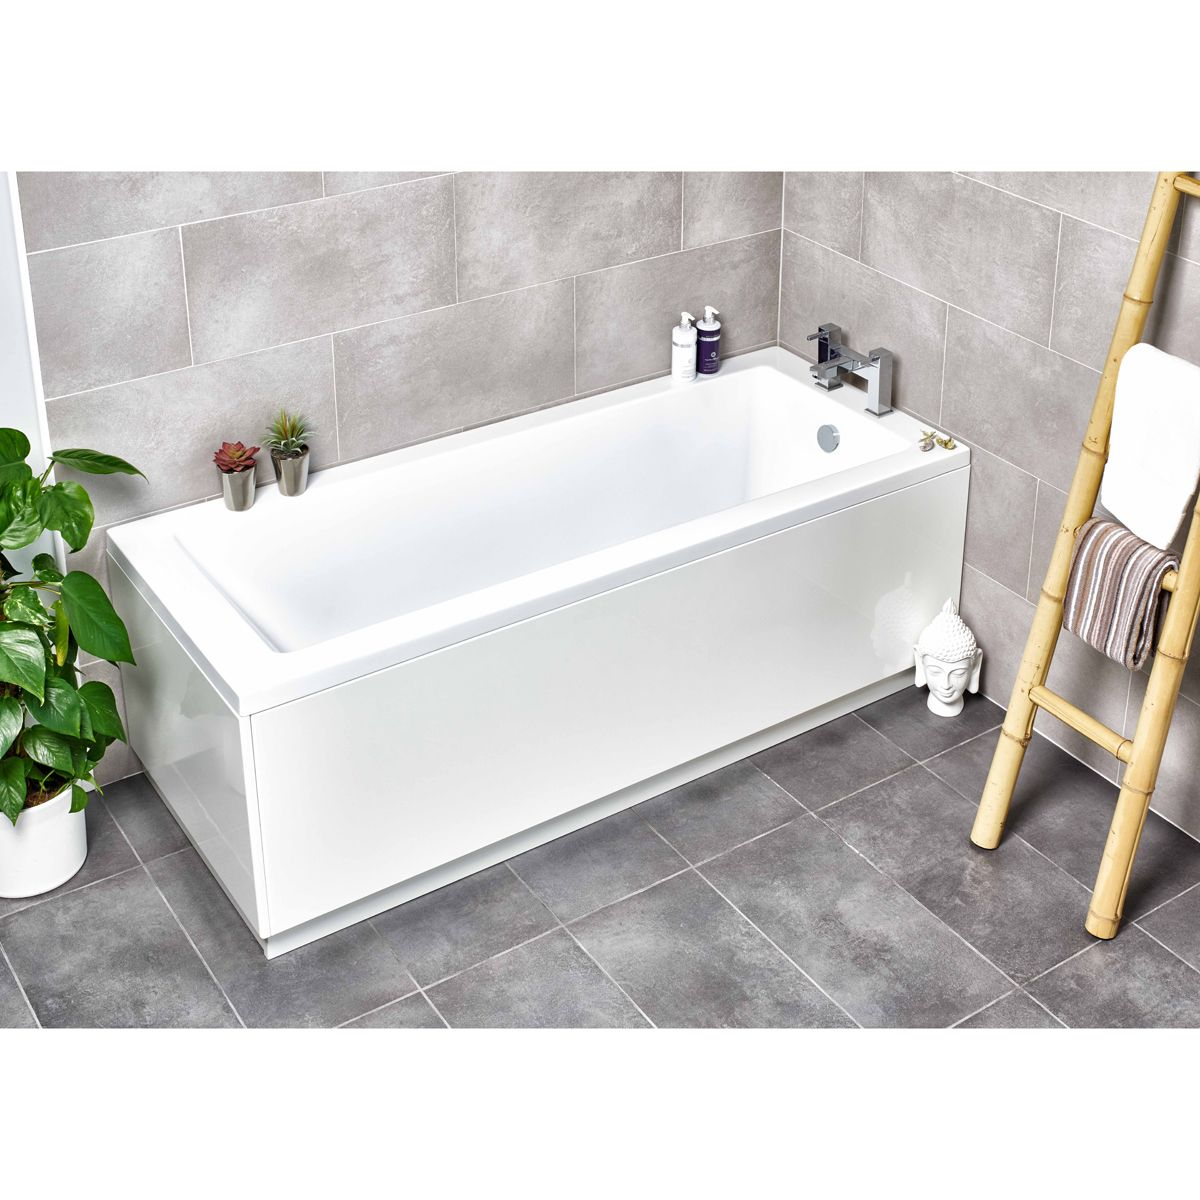 Kartell Options Single Ended Bath 1700 x 750mm Lifestyle